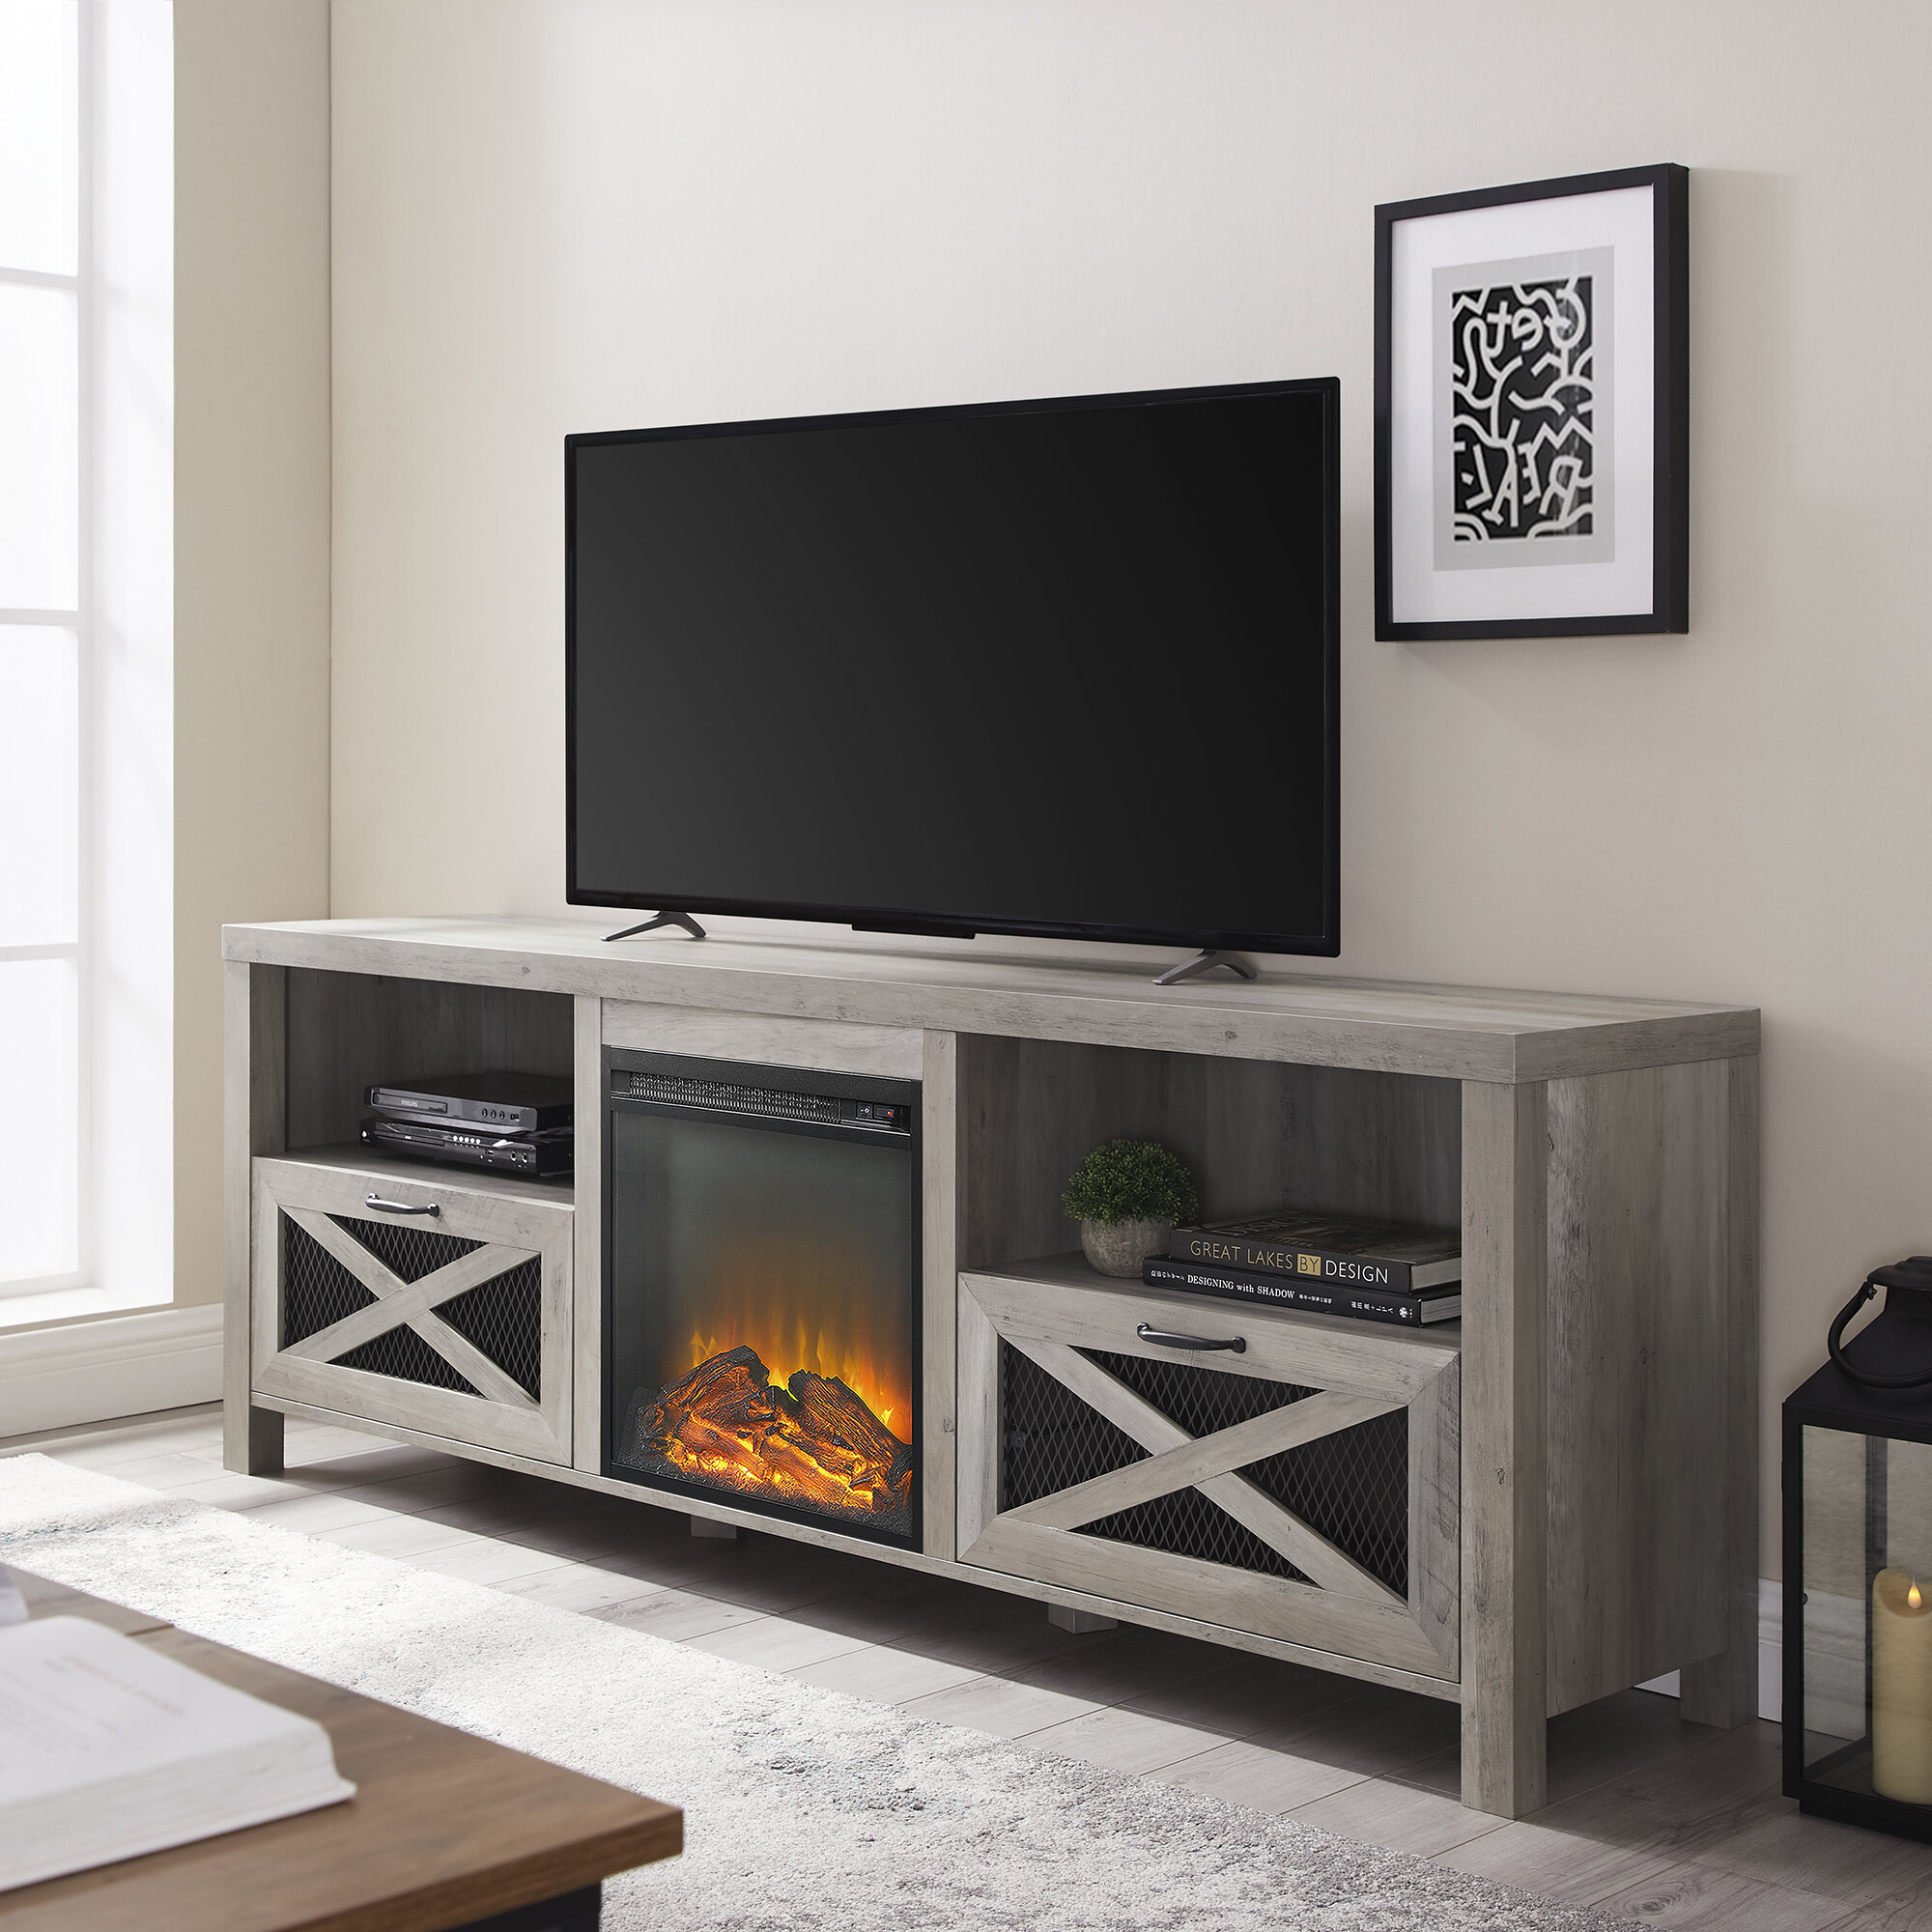 """Wayfair Fireplace Tv Stand Inspirational Tansey Tv Stand for Tvs Up to 70"""" with Electric Fireplace"""